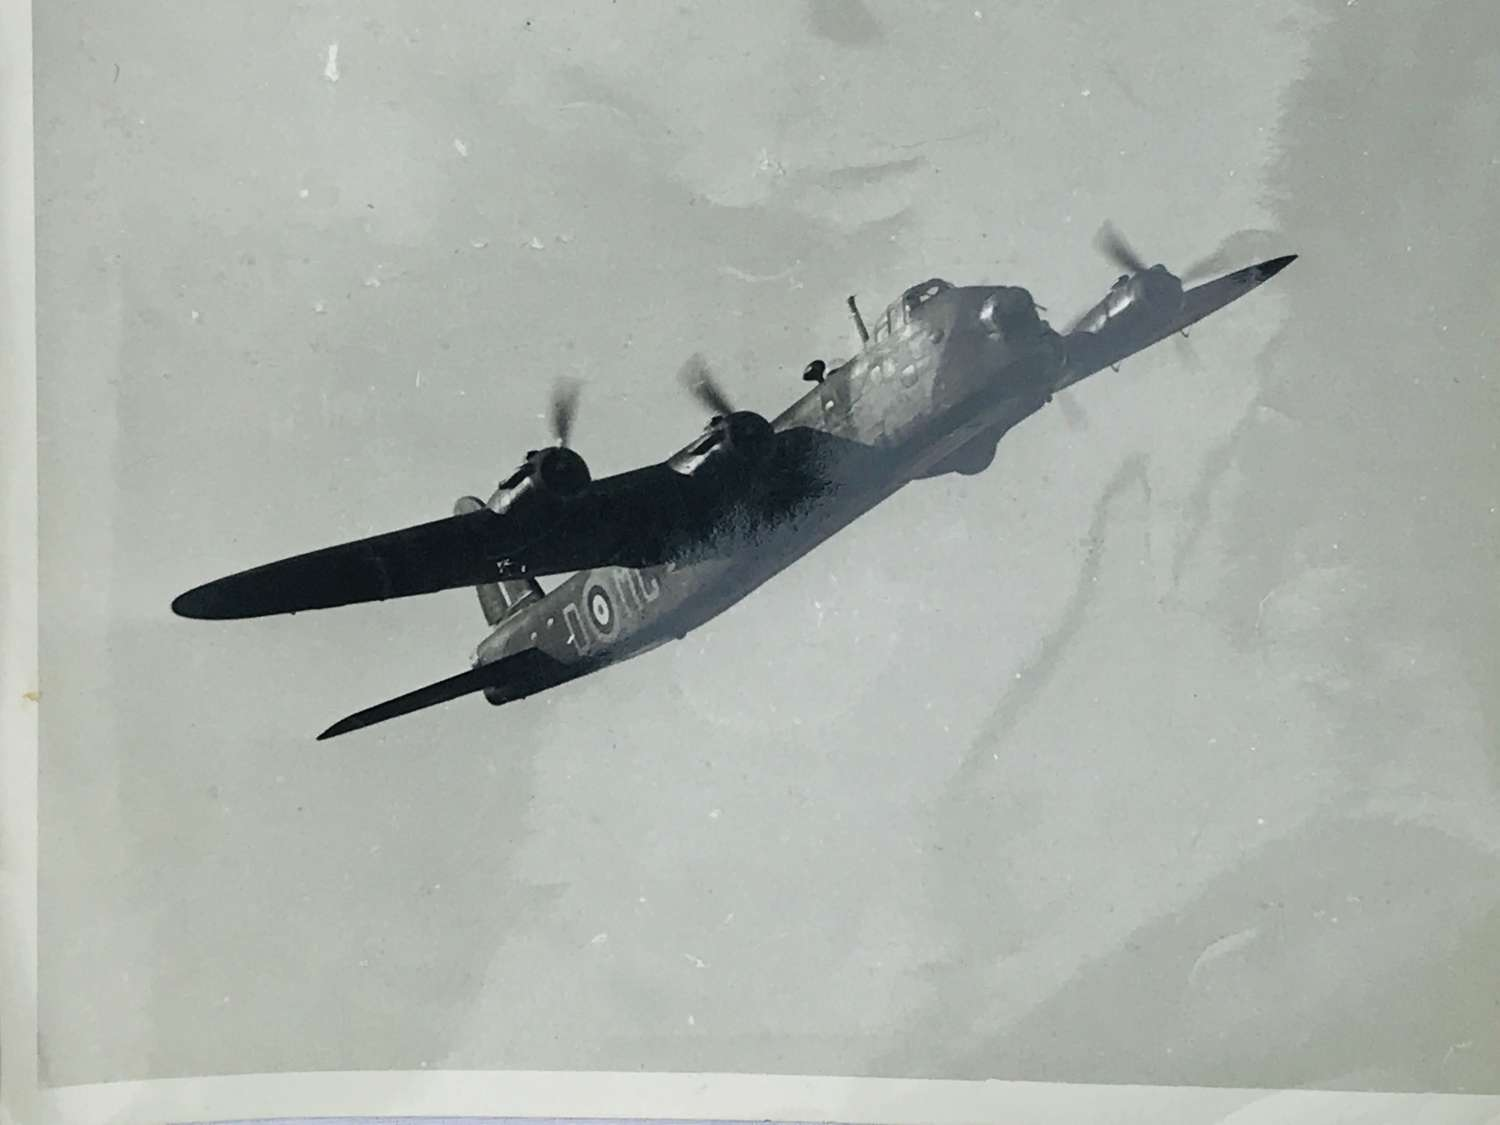 Air Ministry photograph of a Short Stirling bomber